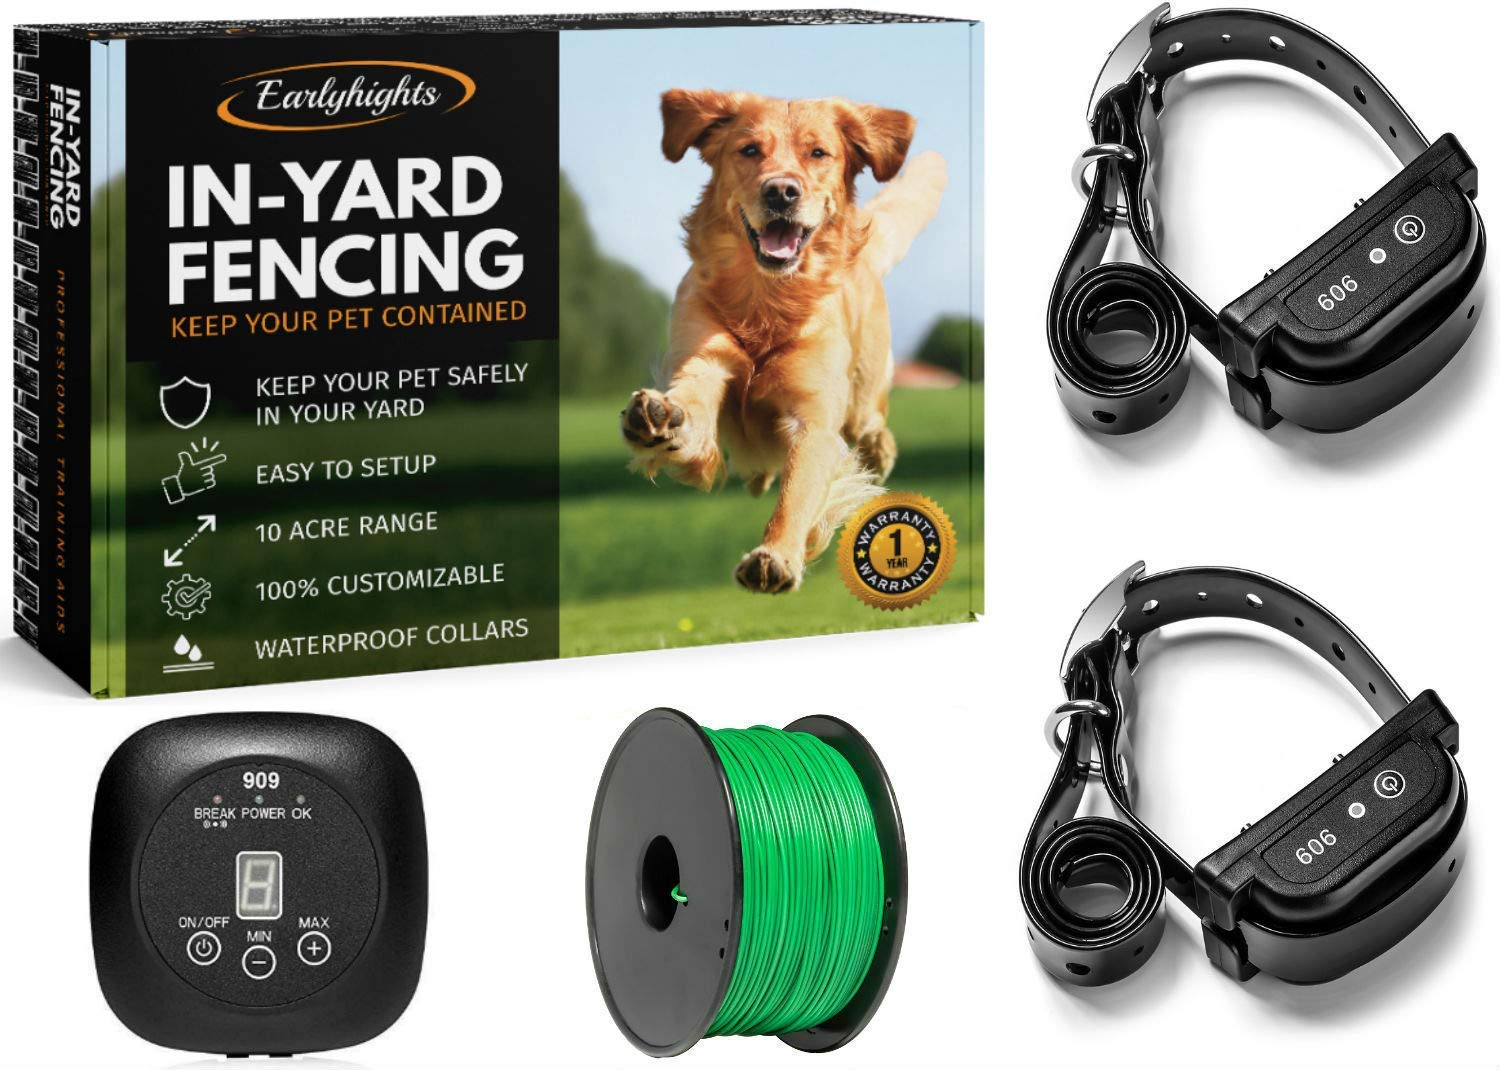 Earlyhights Electric Underground Outdoor Dog Containment Fence System,5 Acre Range 500 Feet In Ground Wire, Small, Medium, Or Large Dogs Over 5 lbs by Earlyhights